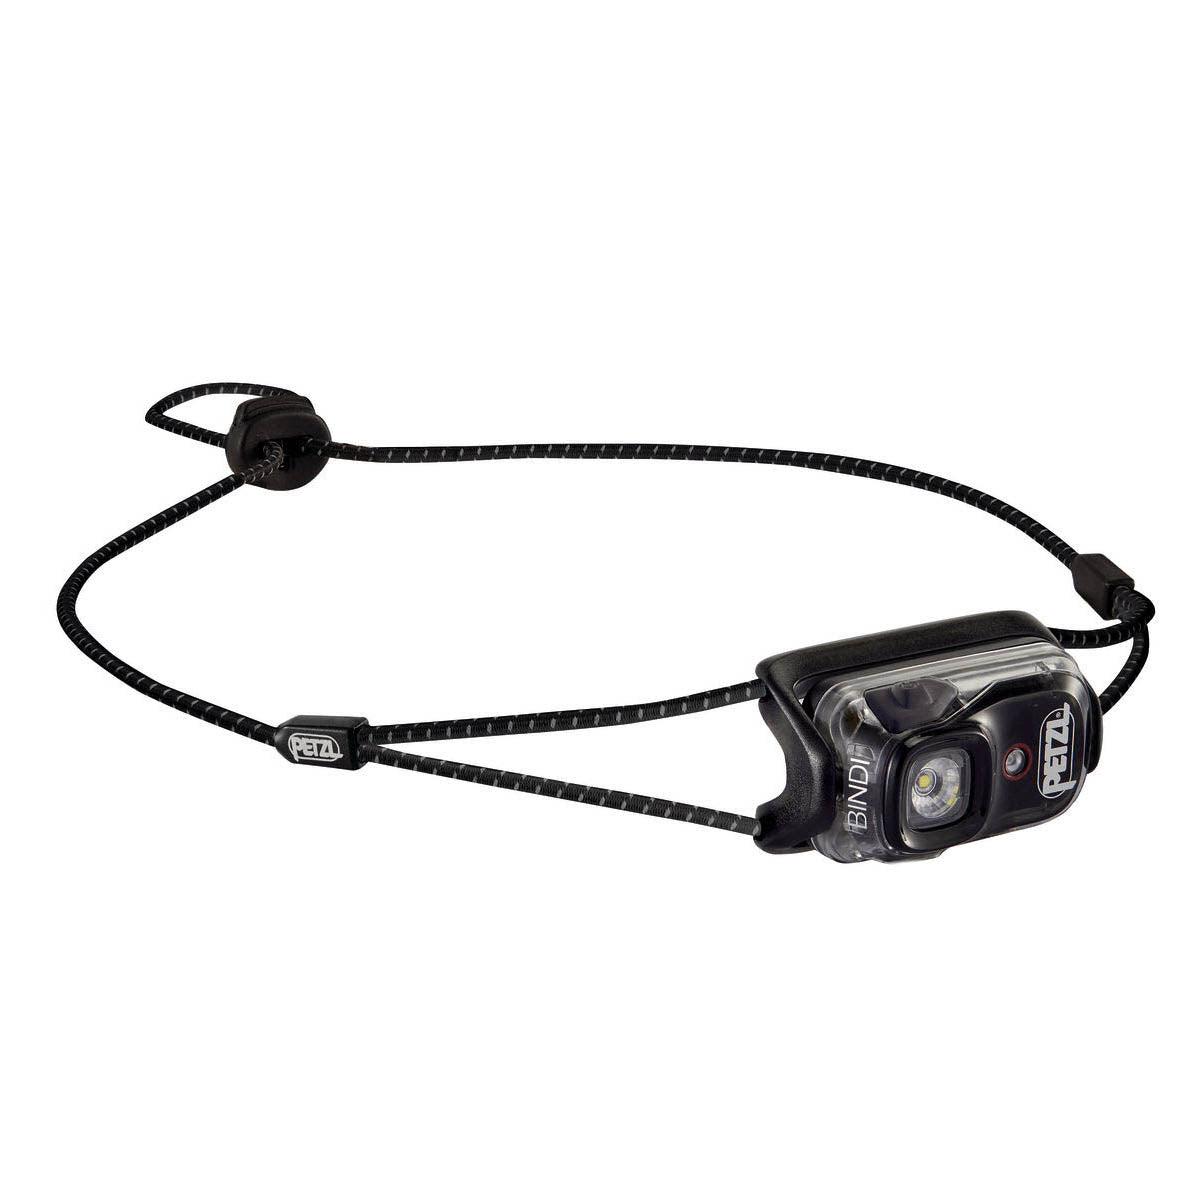 Petzl Bindi headlamp in Black colour with black strap